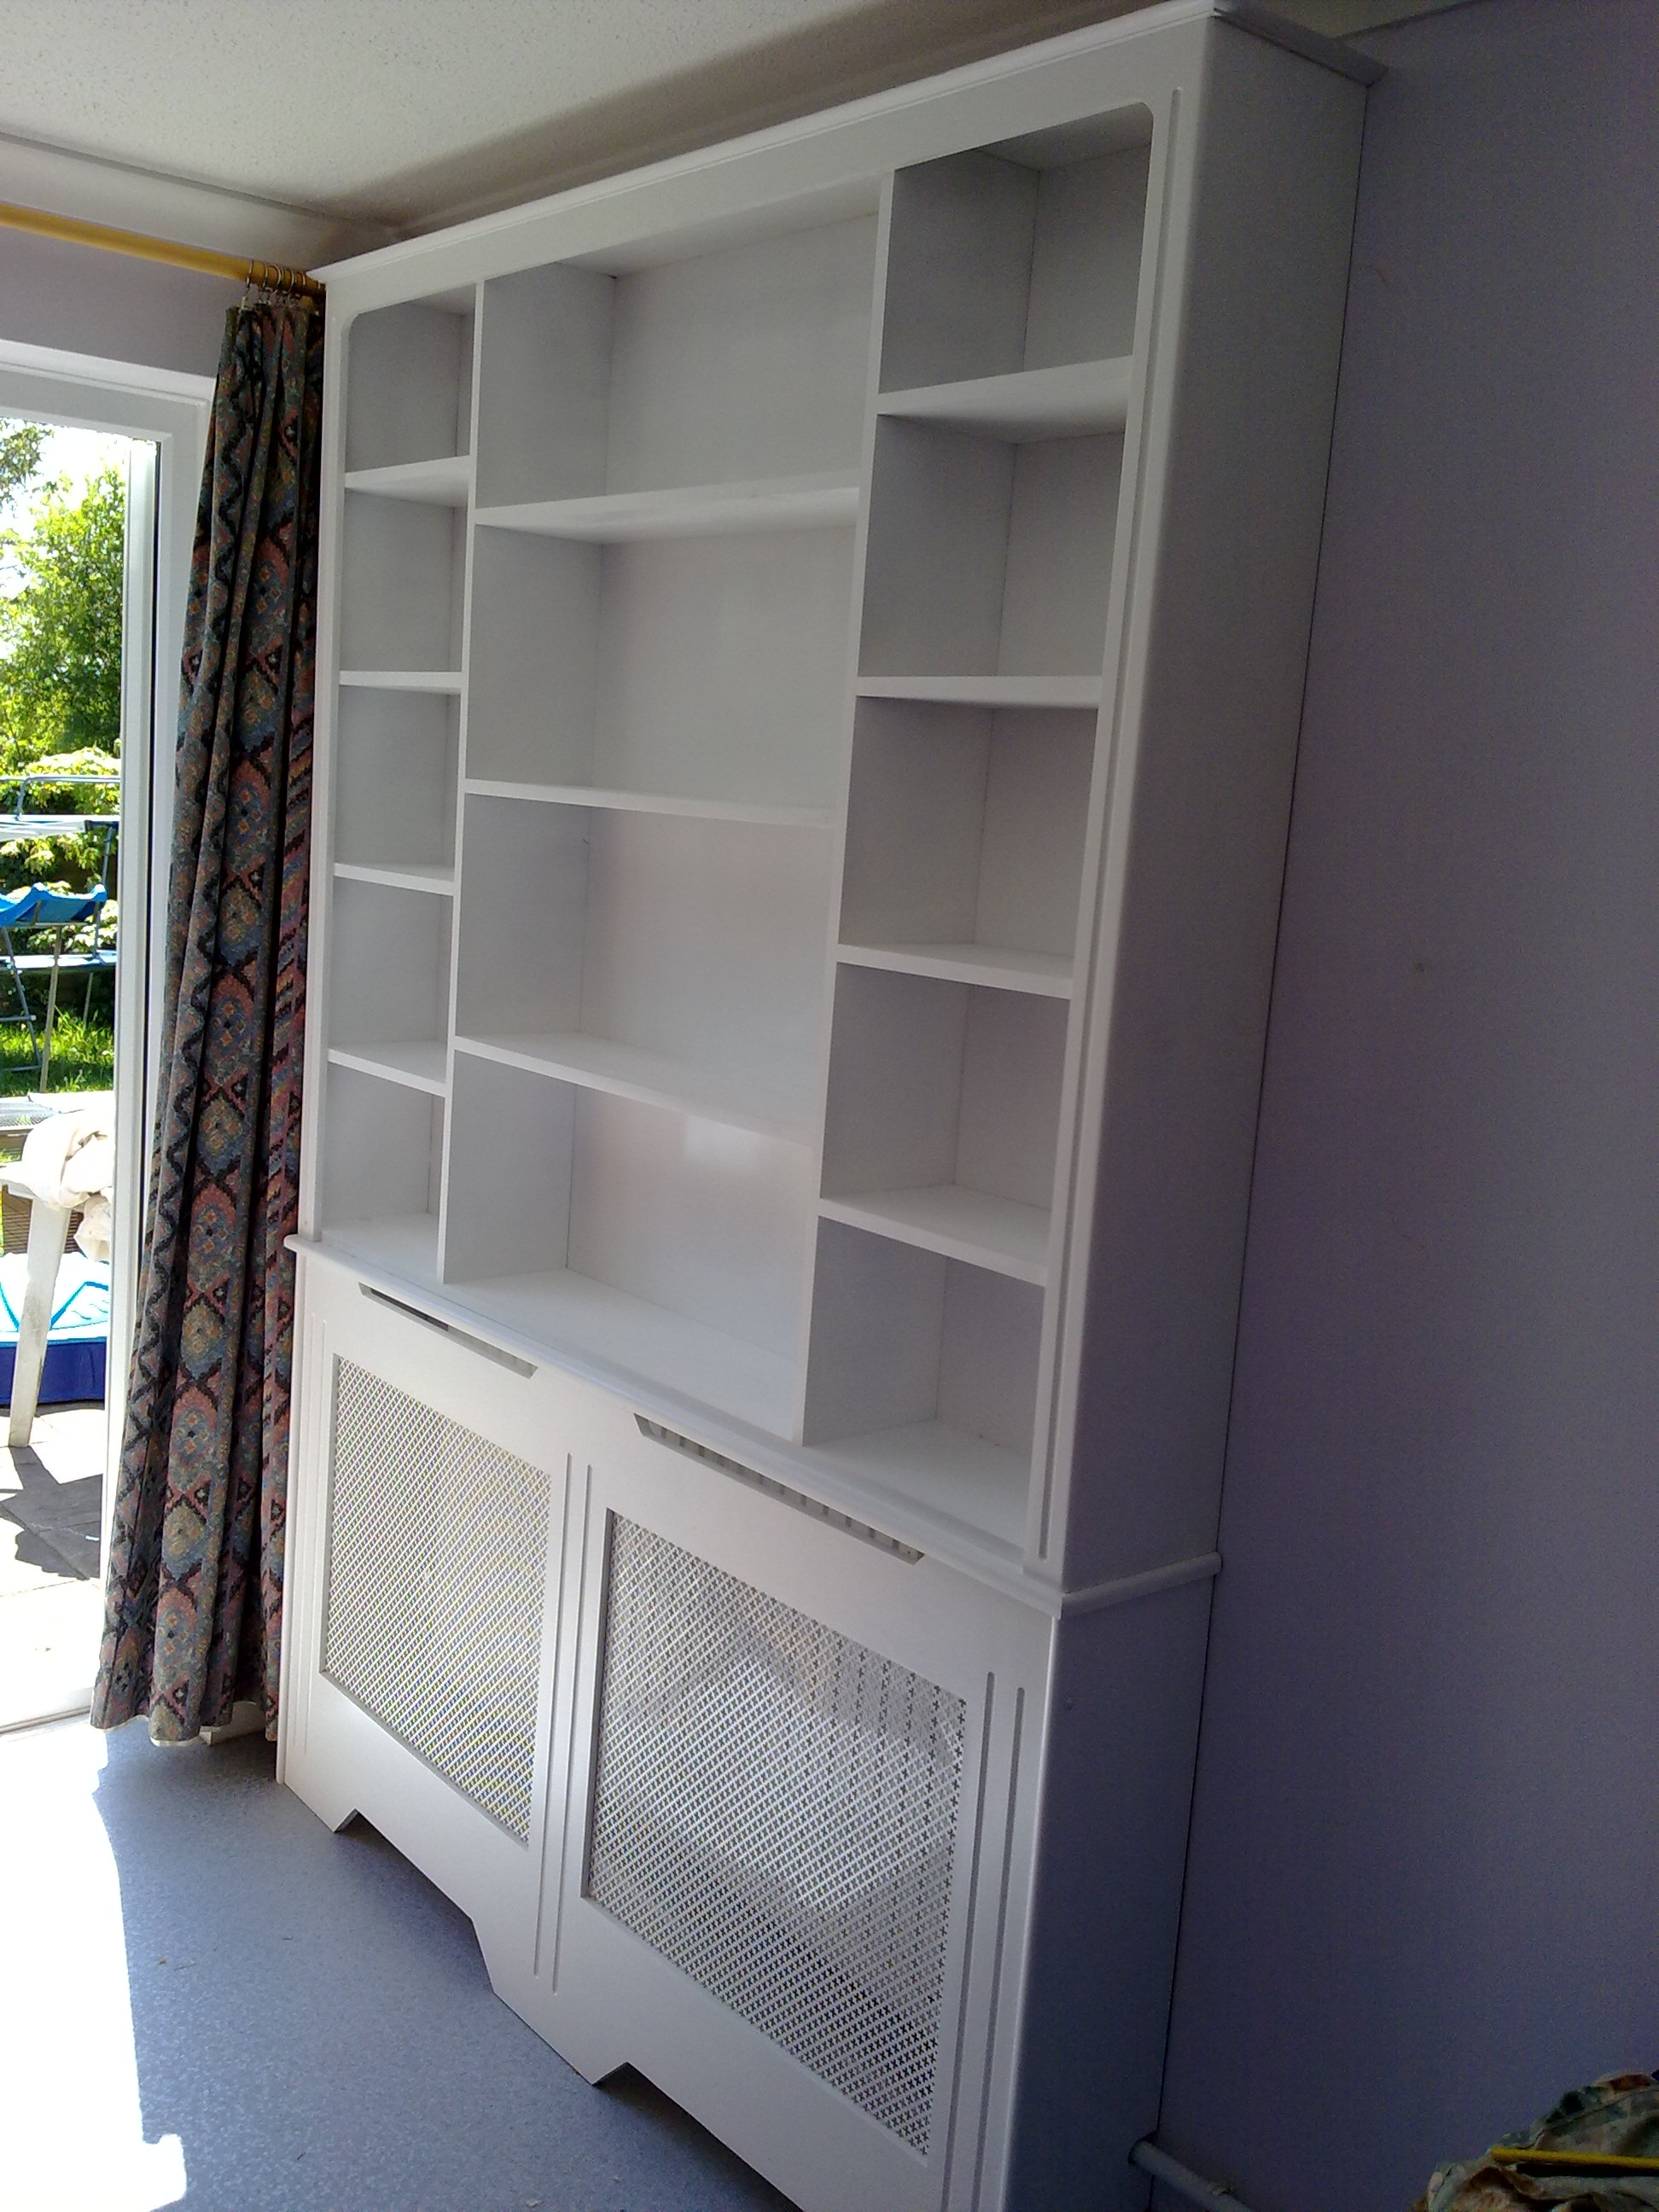 Radiator Bookcase Cabinets Amazing Bookcases In Radiator Covers And Bookcases (Image 7 of 15)